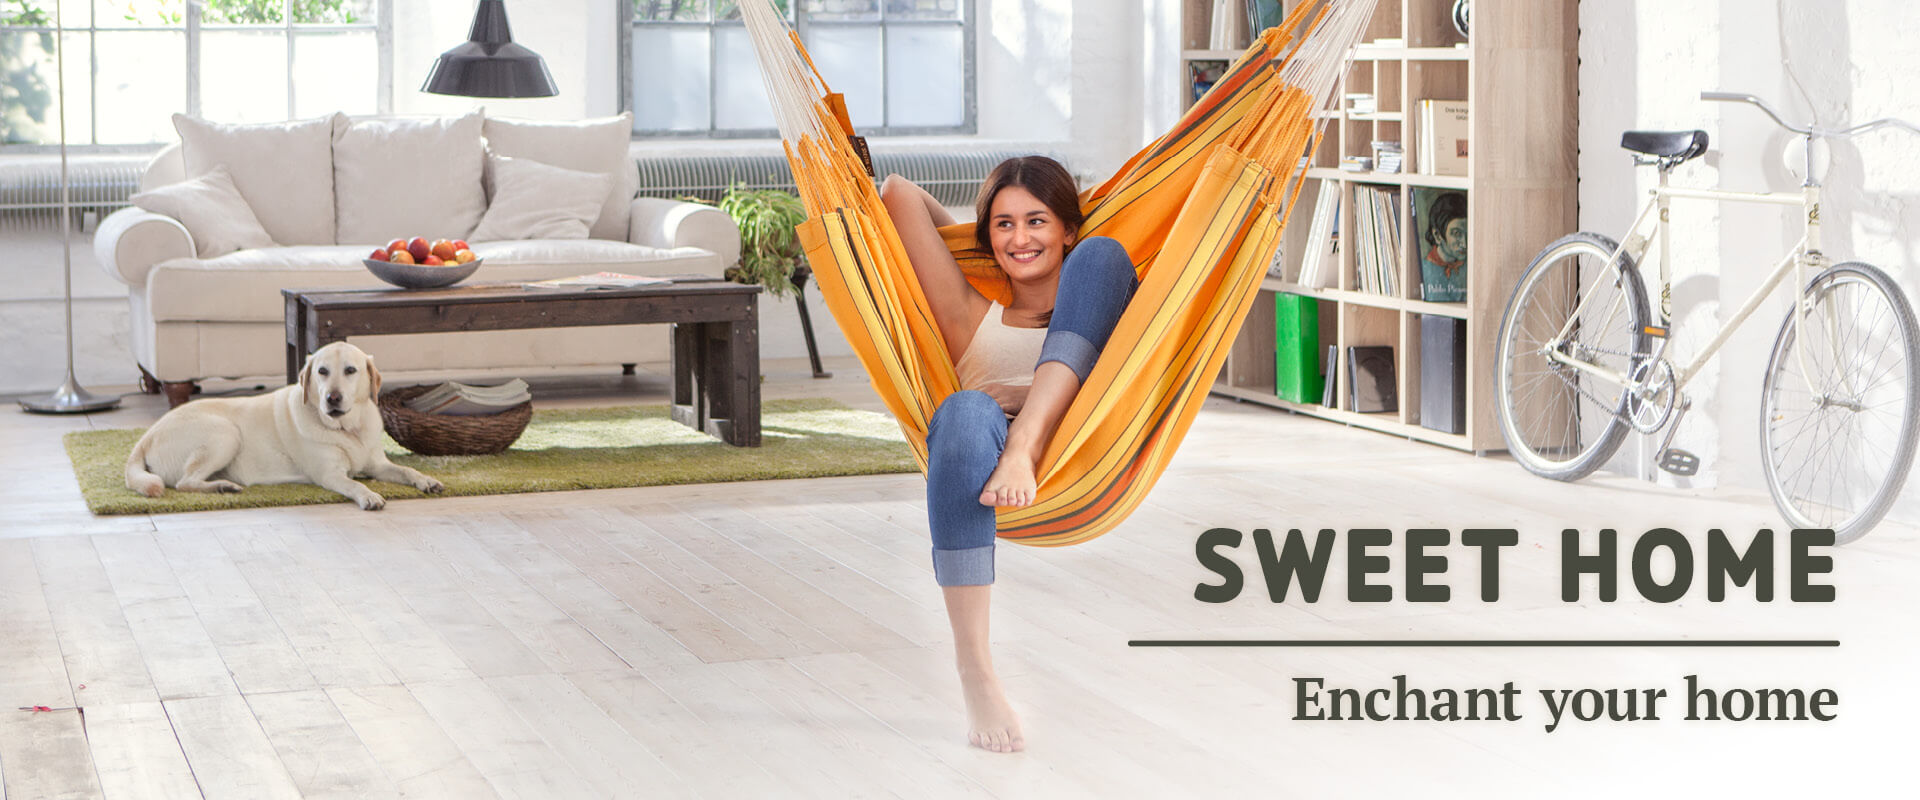 Sweet Home - Enchant your home